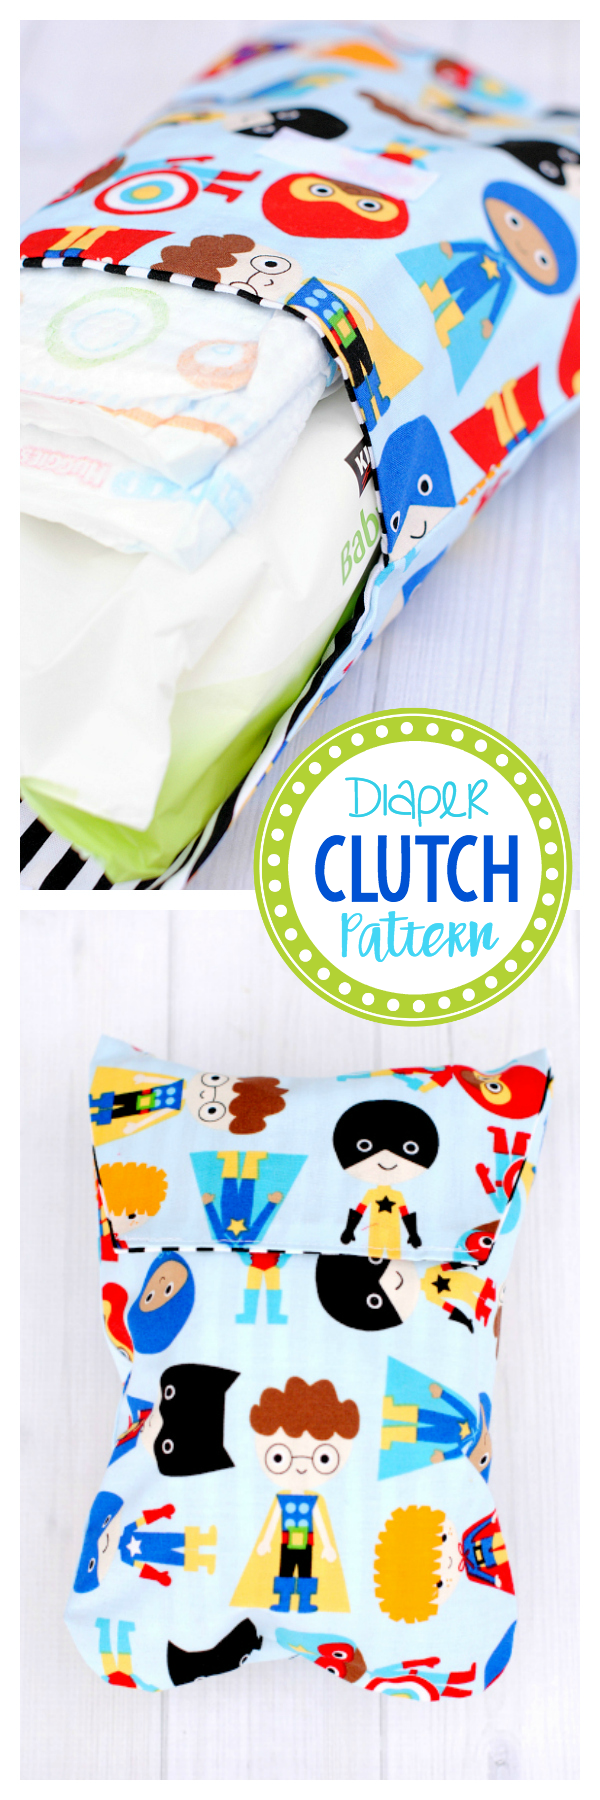 Cute and Easy Diaper Clutch Pattern-Great for a New Mom and Makes a Great Baby Shower Gift! An easy sewing pattern for beginners to make. A really fun thing to sew! #sewingprojects #sewingpatterns #sewingpatternsfree #sewingpatternsbeginner